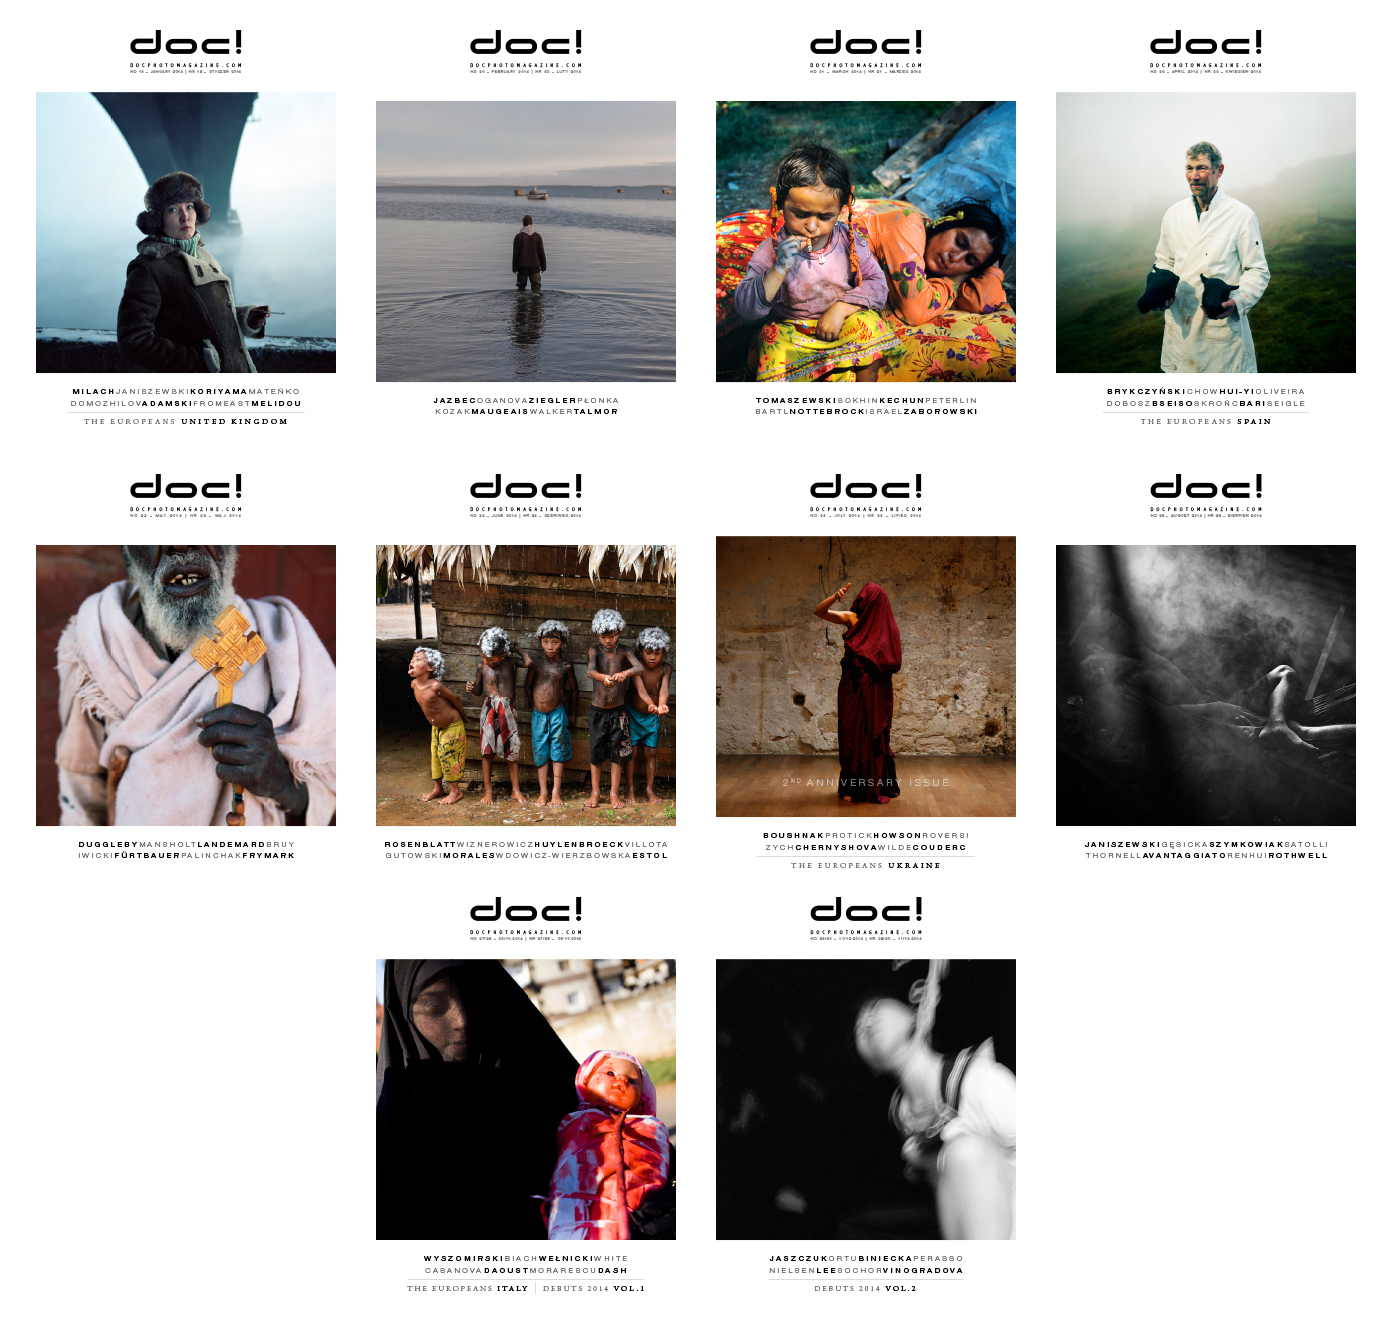 doc! photo 2014 Full Year Collection download dree